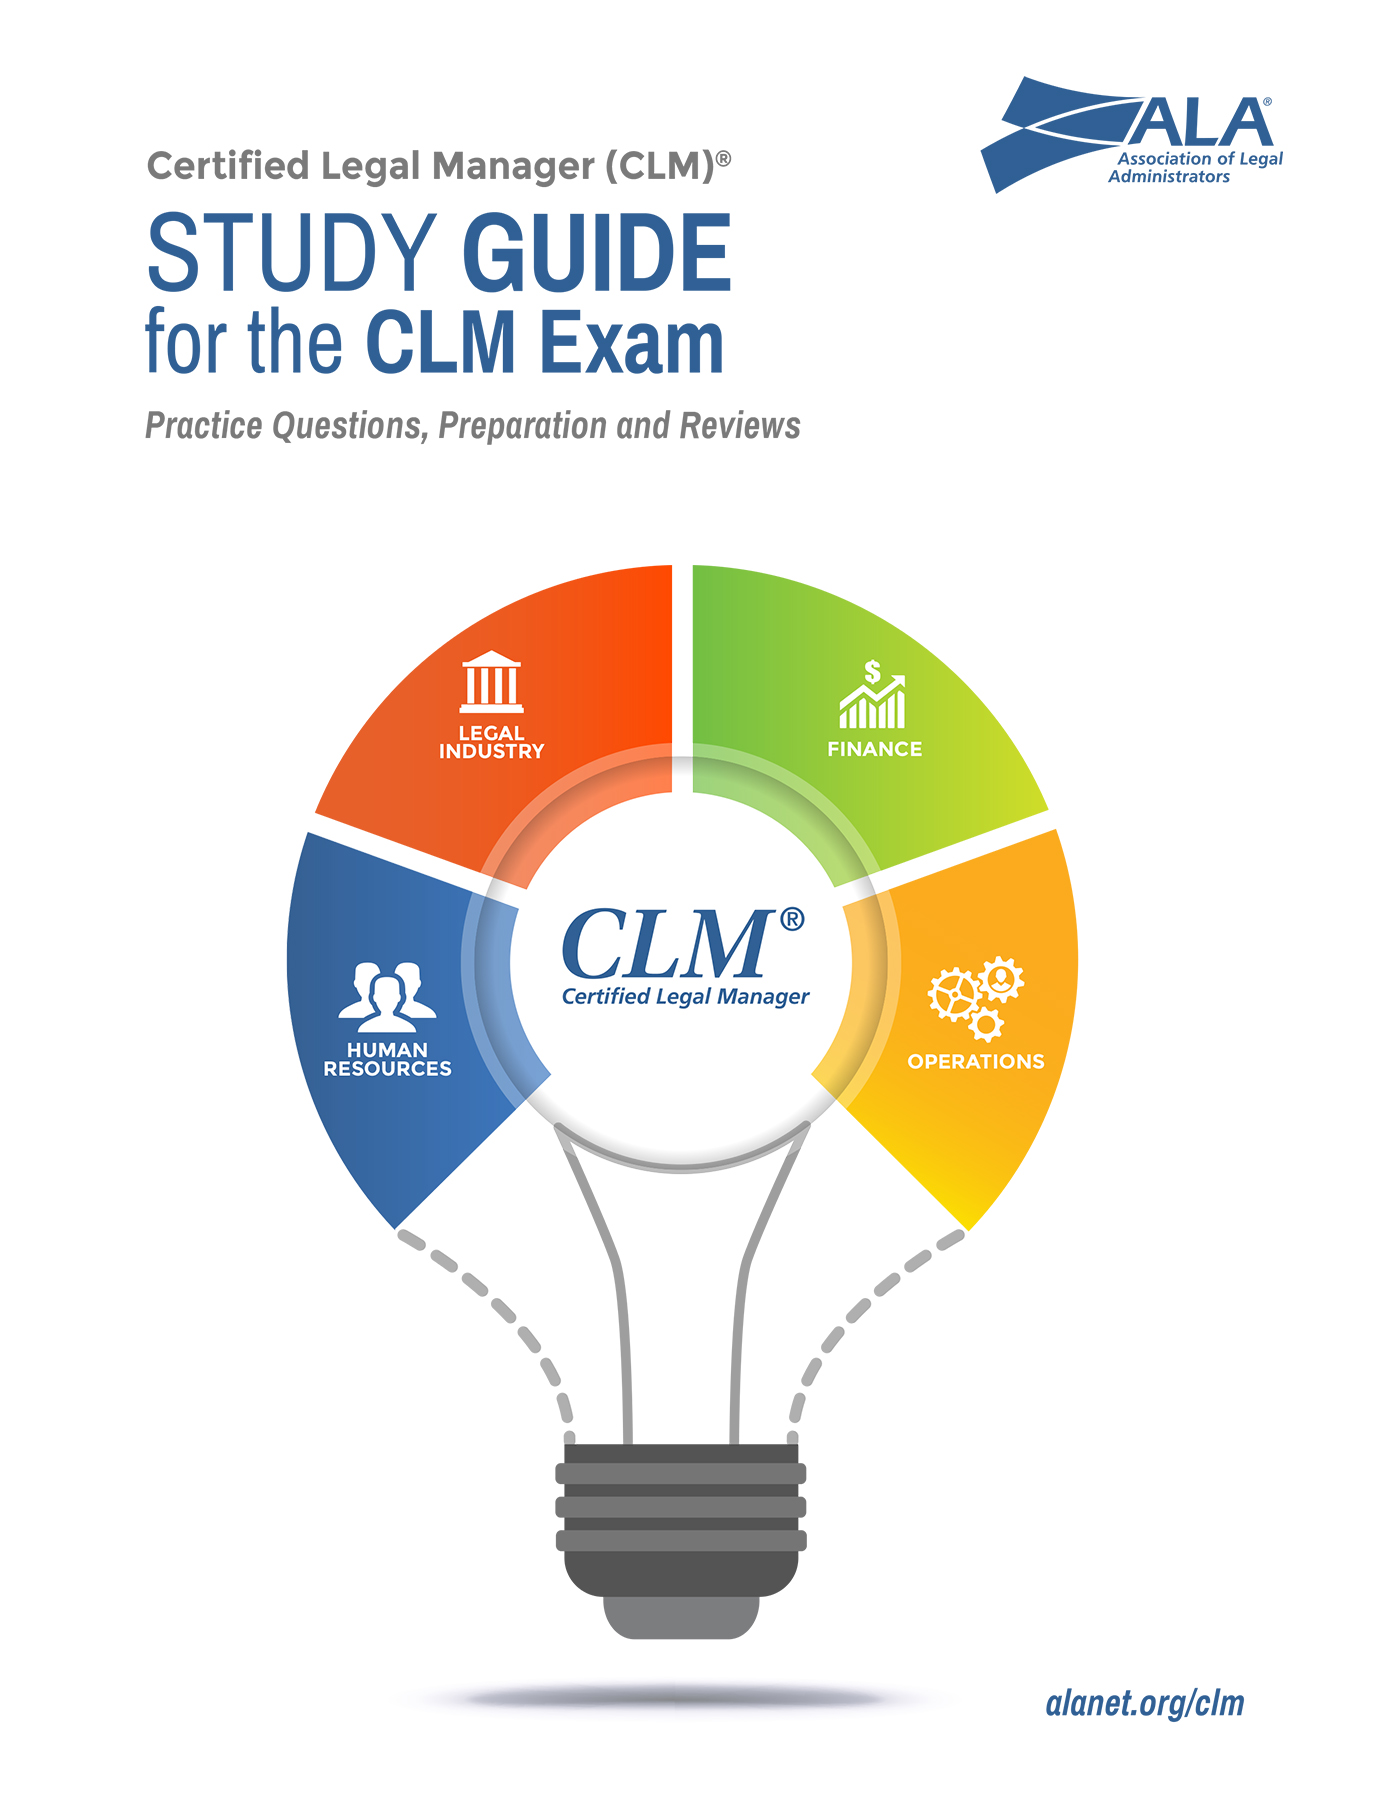 Study Guide for the CLM Exam